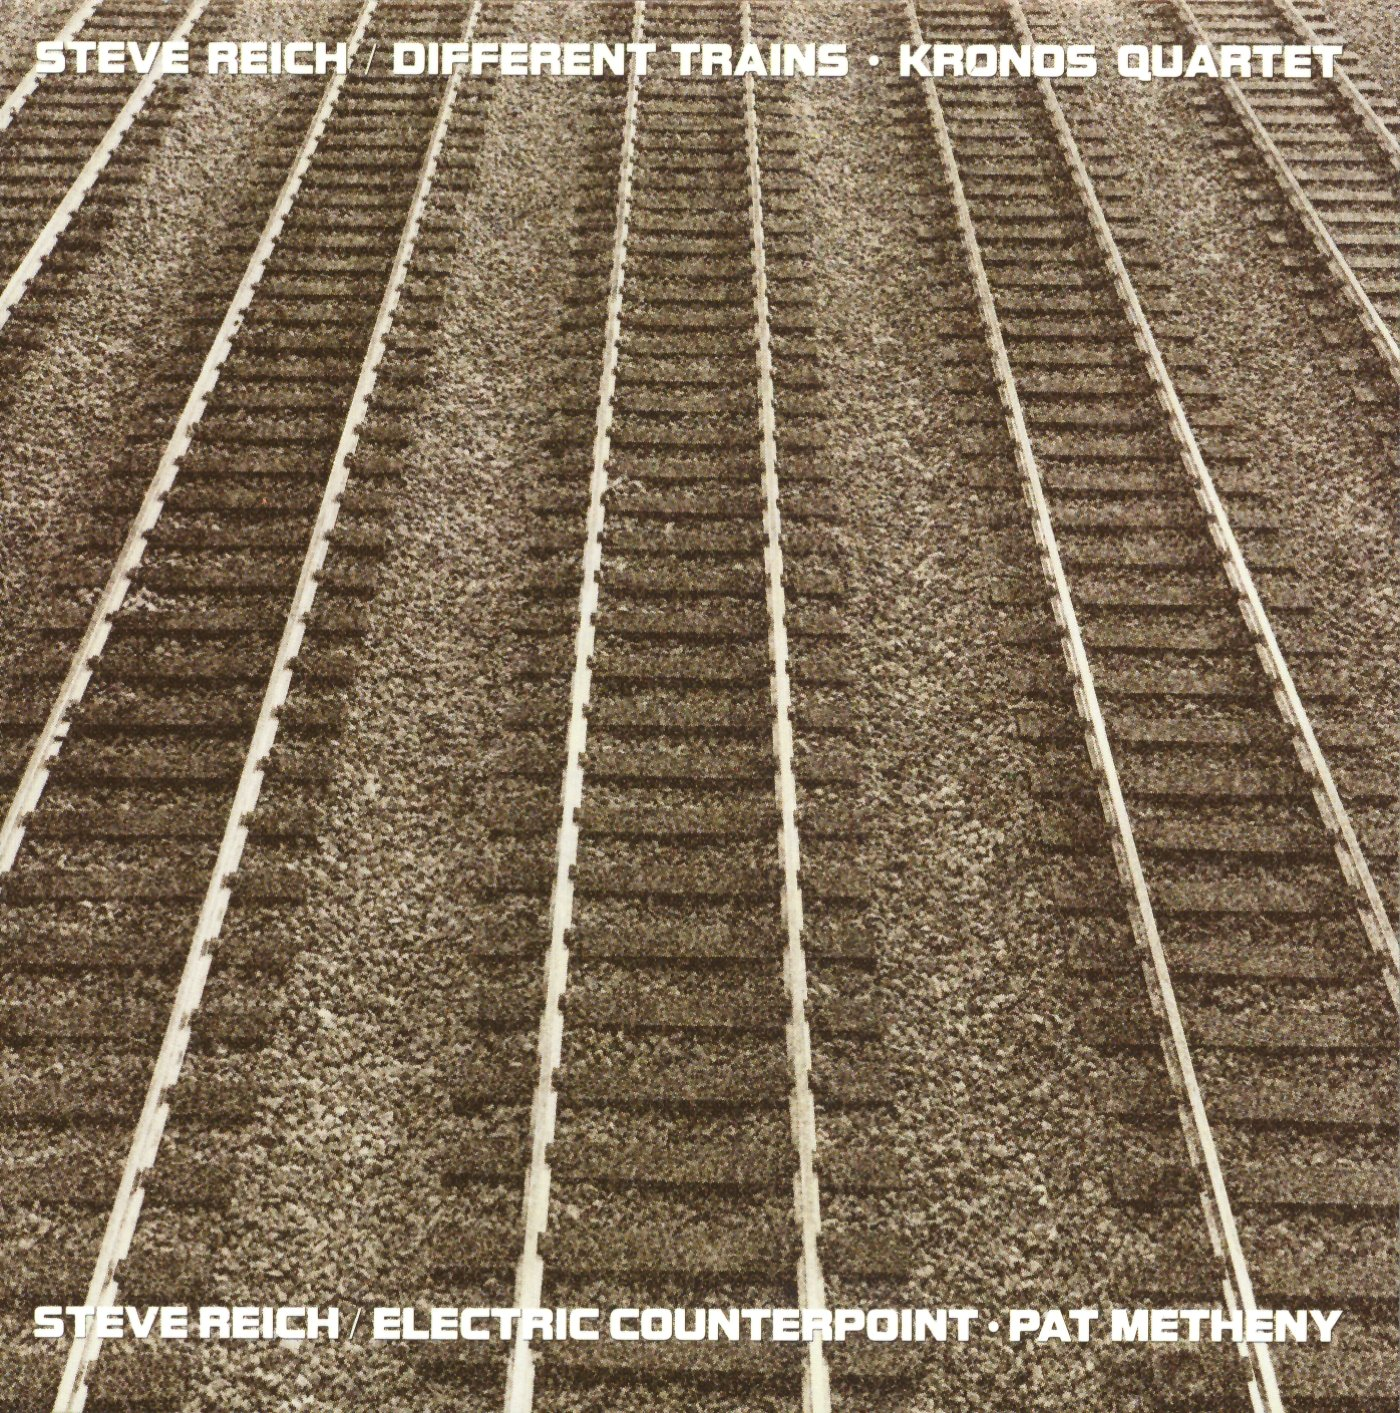 Pat Metheny, Steve Reich, Kronos Quartet - Reich: Different Trains ...